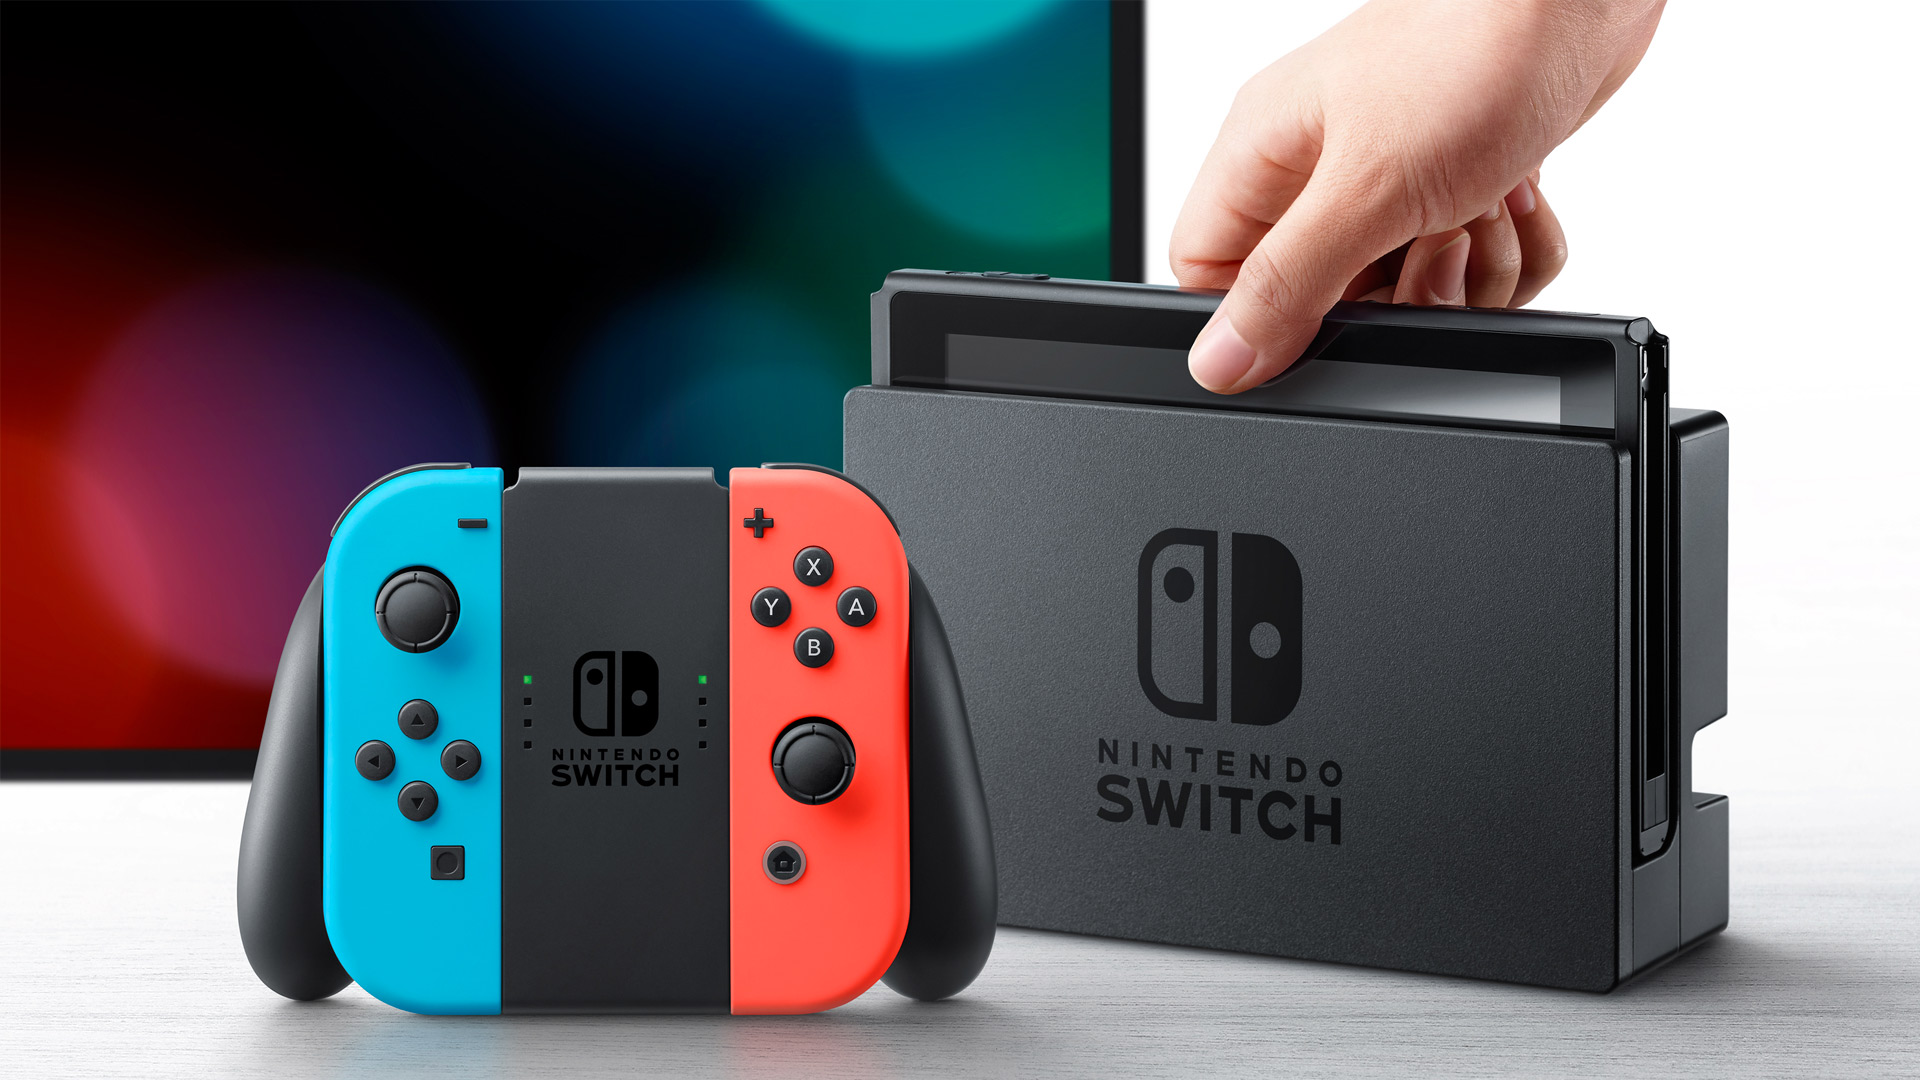 Nintendo Switch: the release date and upcoming games »Let's